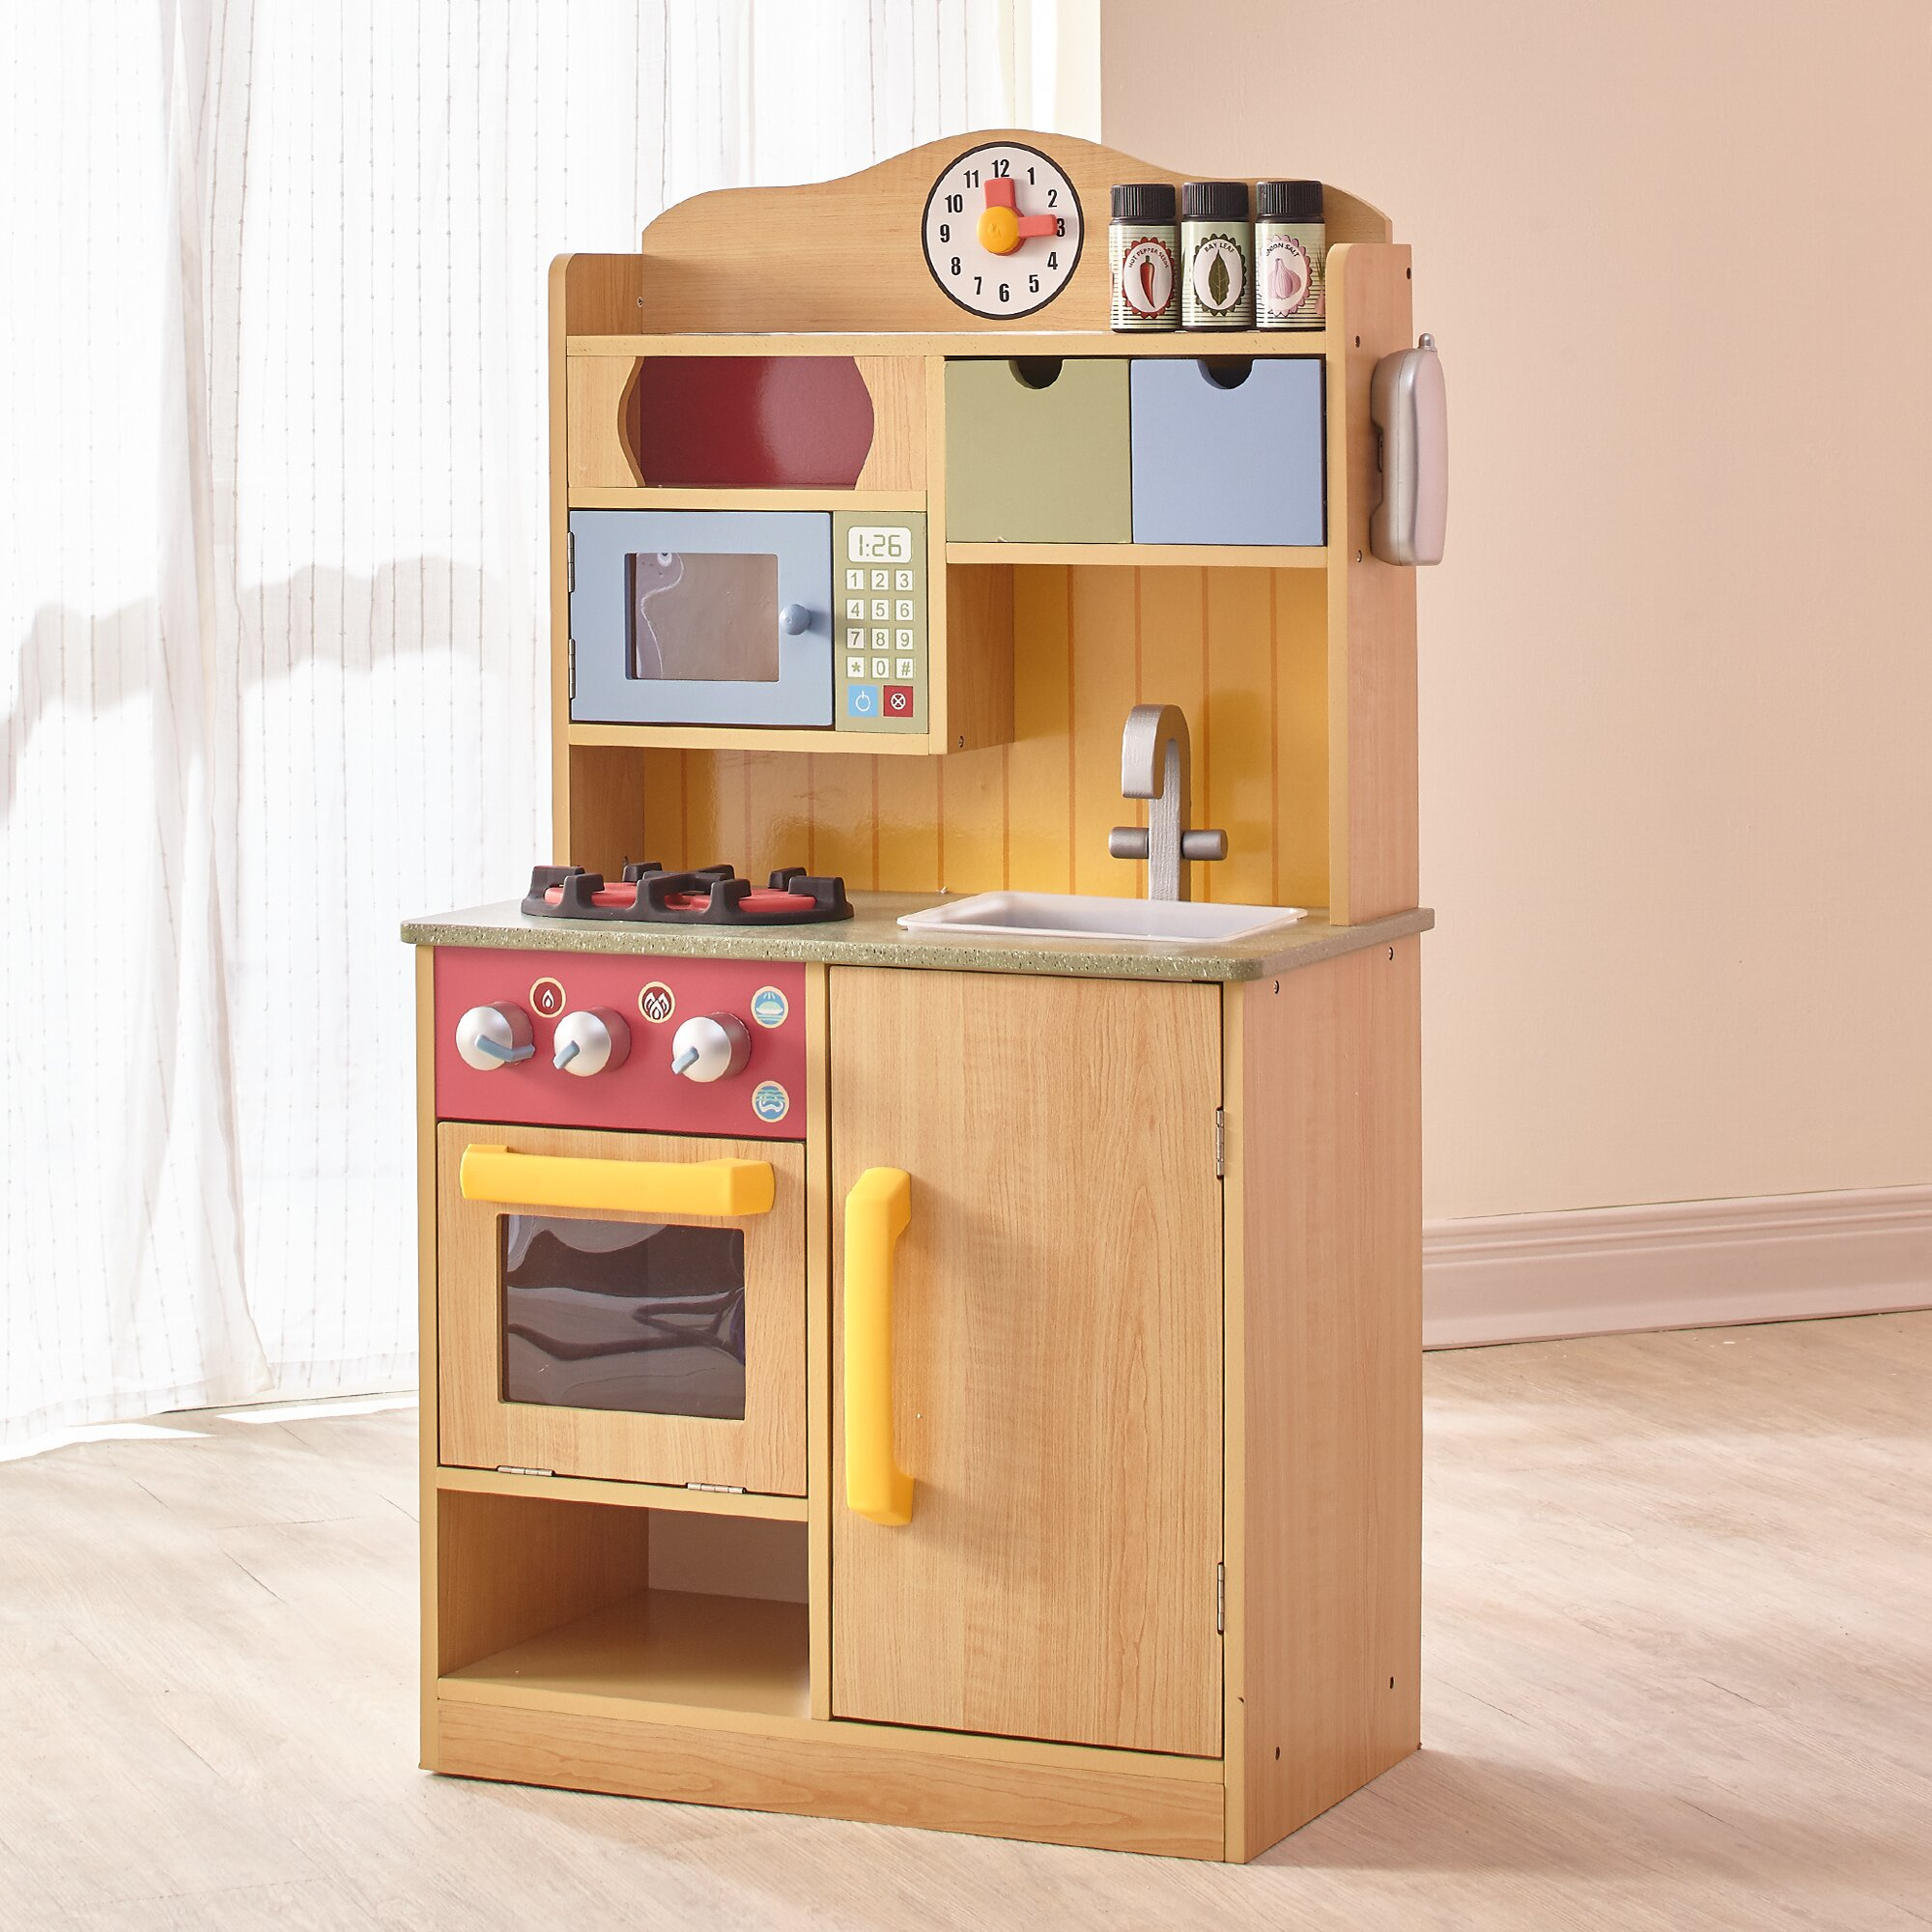 Little kitchen for toddlers - Little Chef Wooden Play Kitchen With Accessories